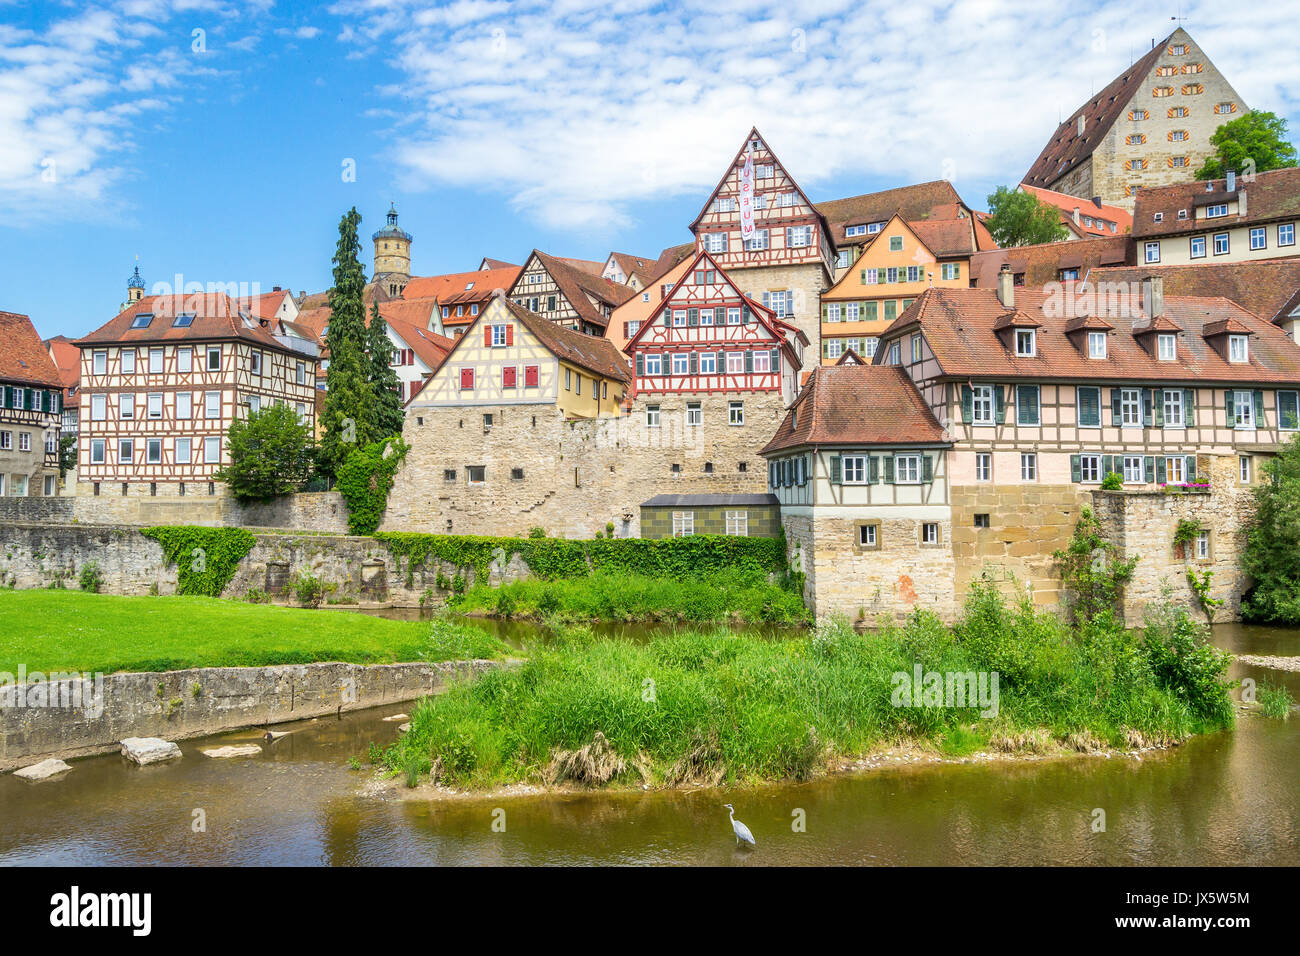 Cityscape of Schwaebisch Hall, Germany - Stock Image